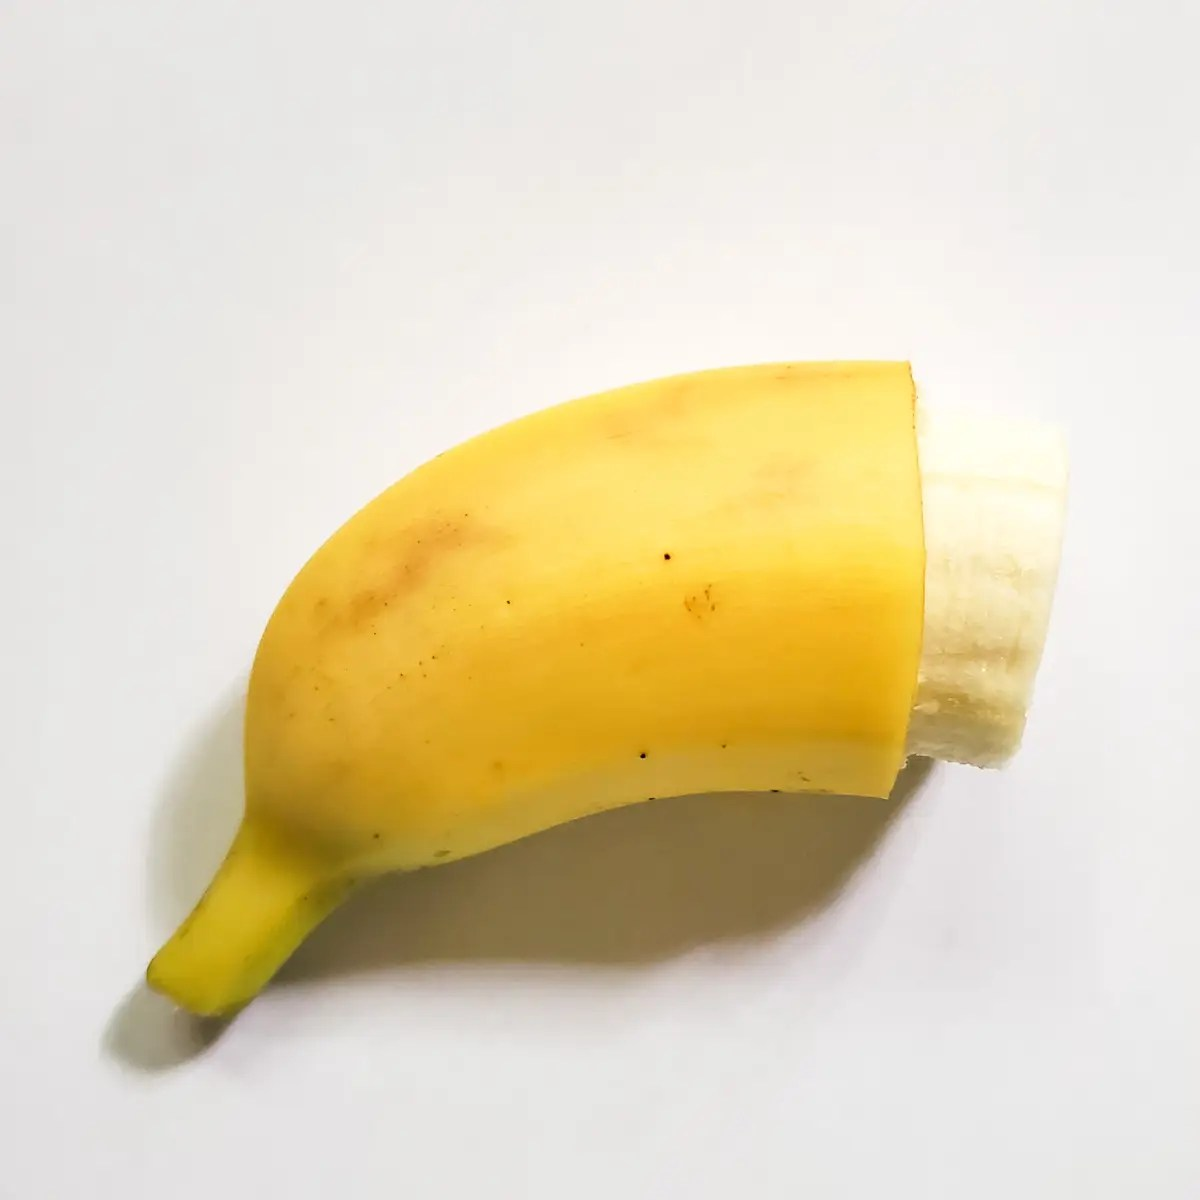 a banana with most of the peel on it showing how to serve a banana for blw